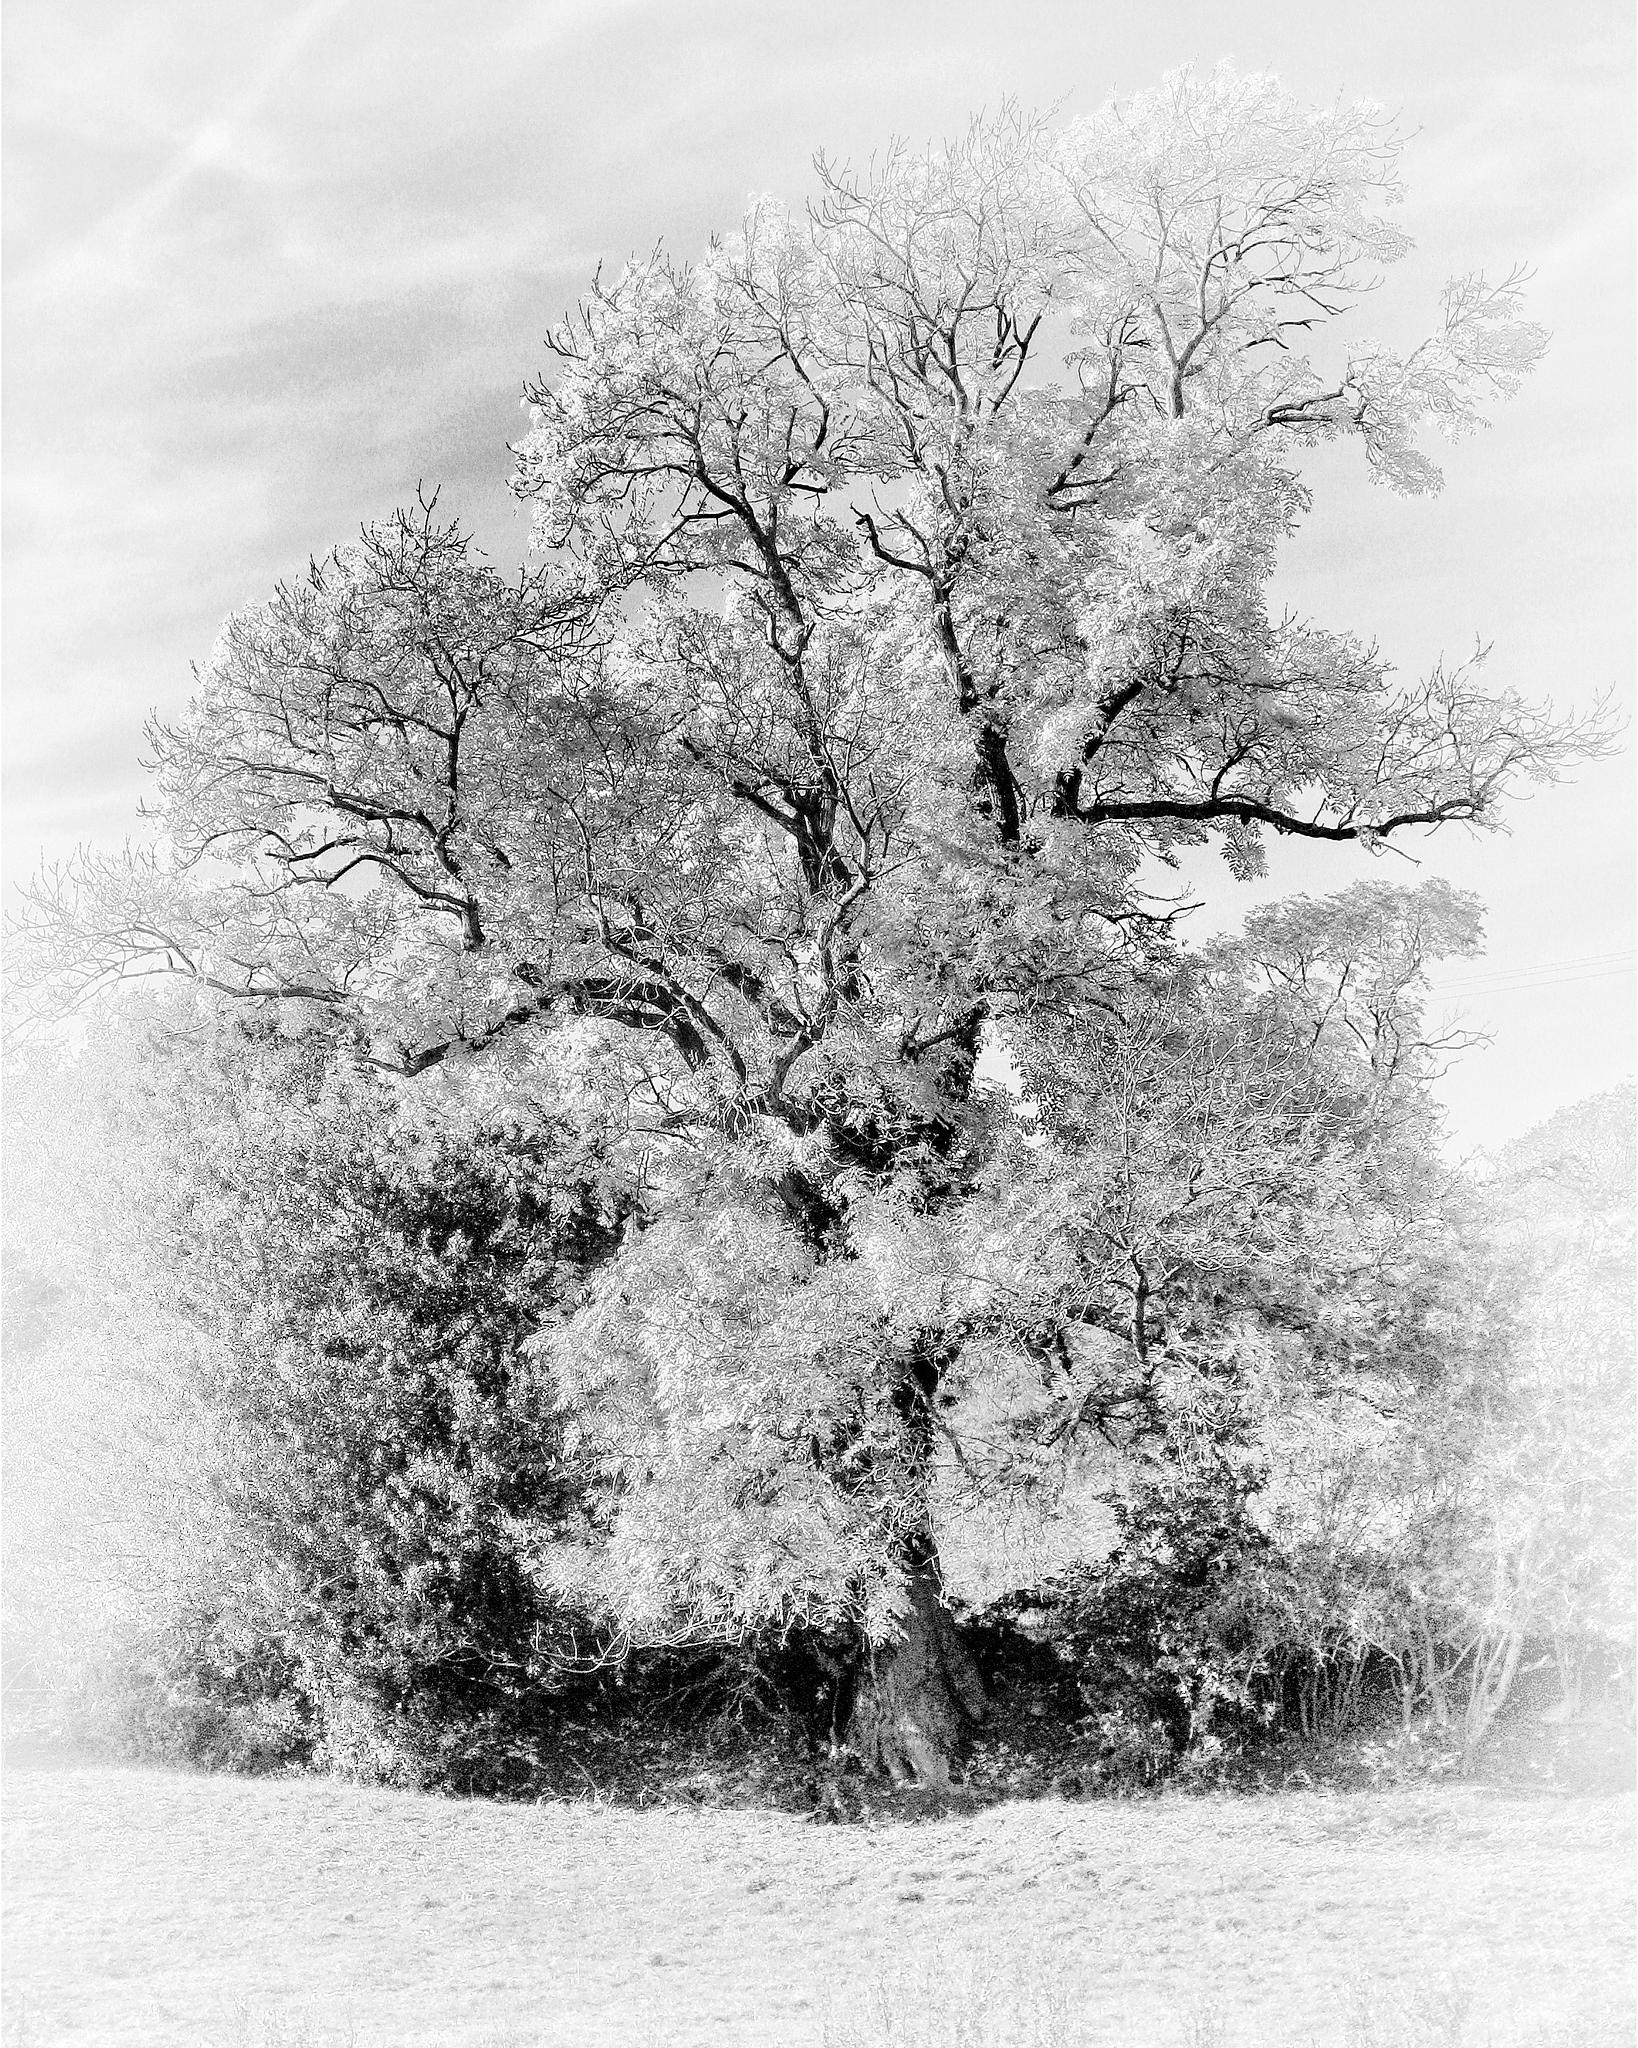 Lonesome tree in black and white by scrawcreations  (Stephen)